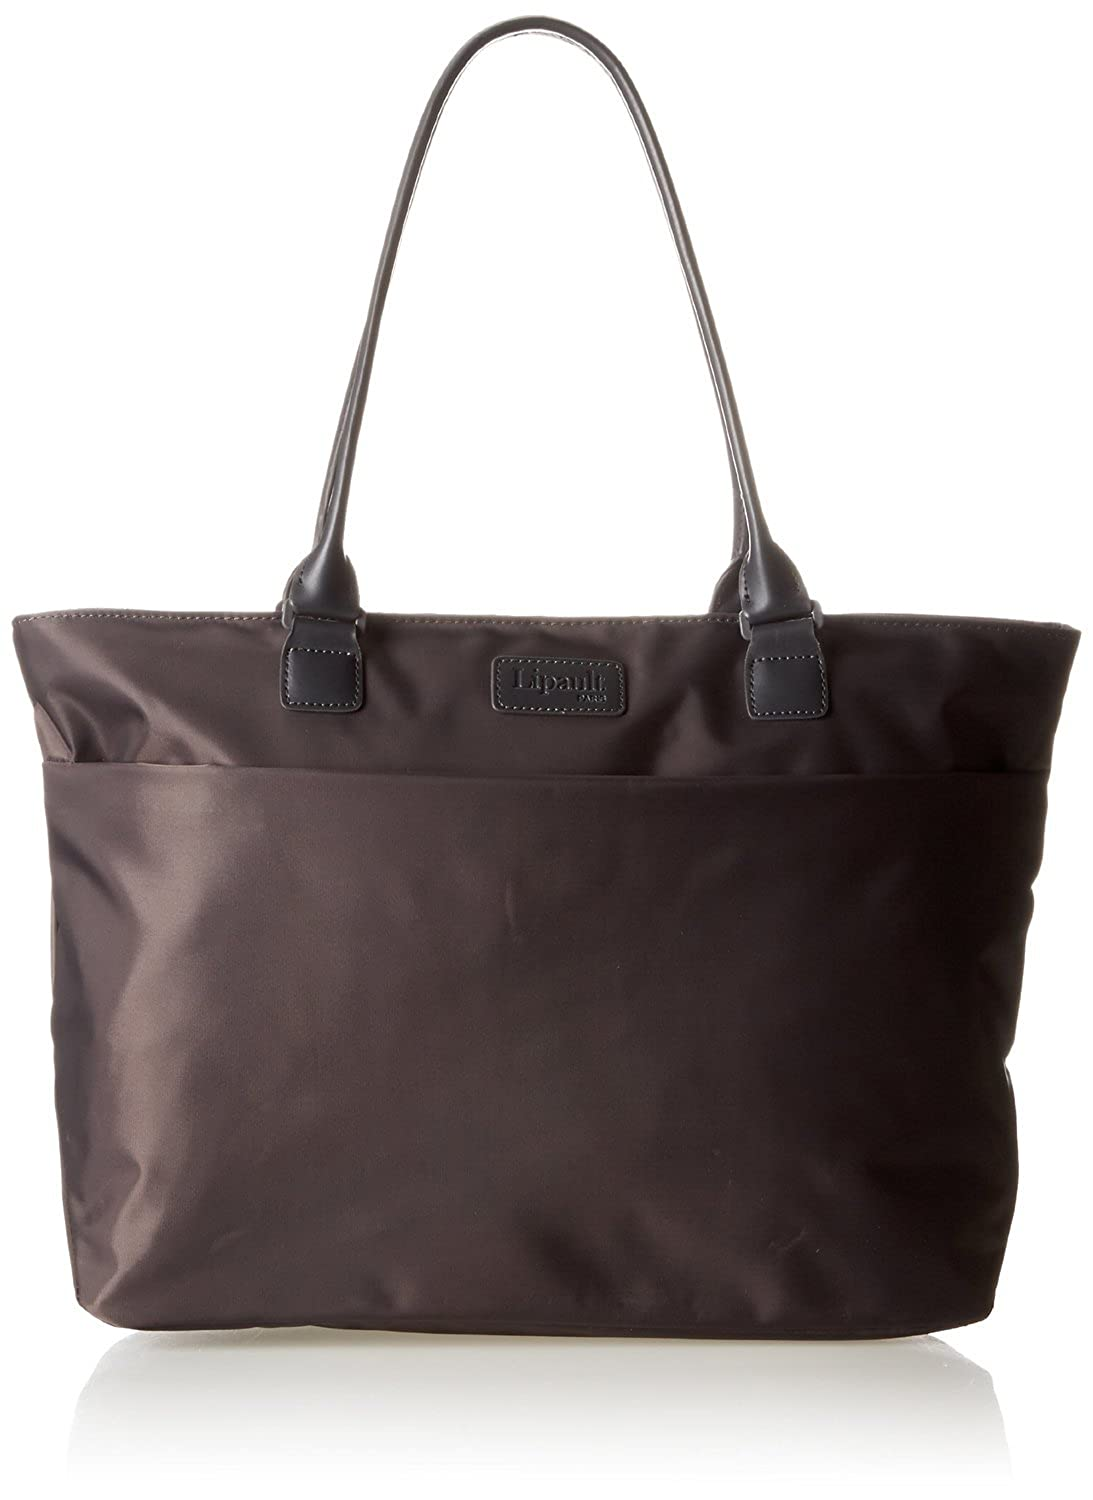 Lipault City Tote Bag